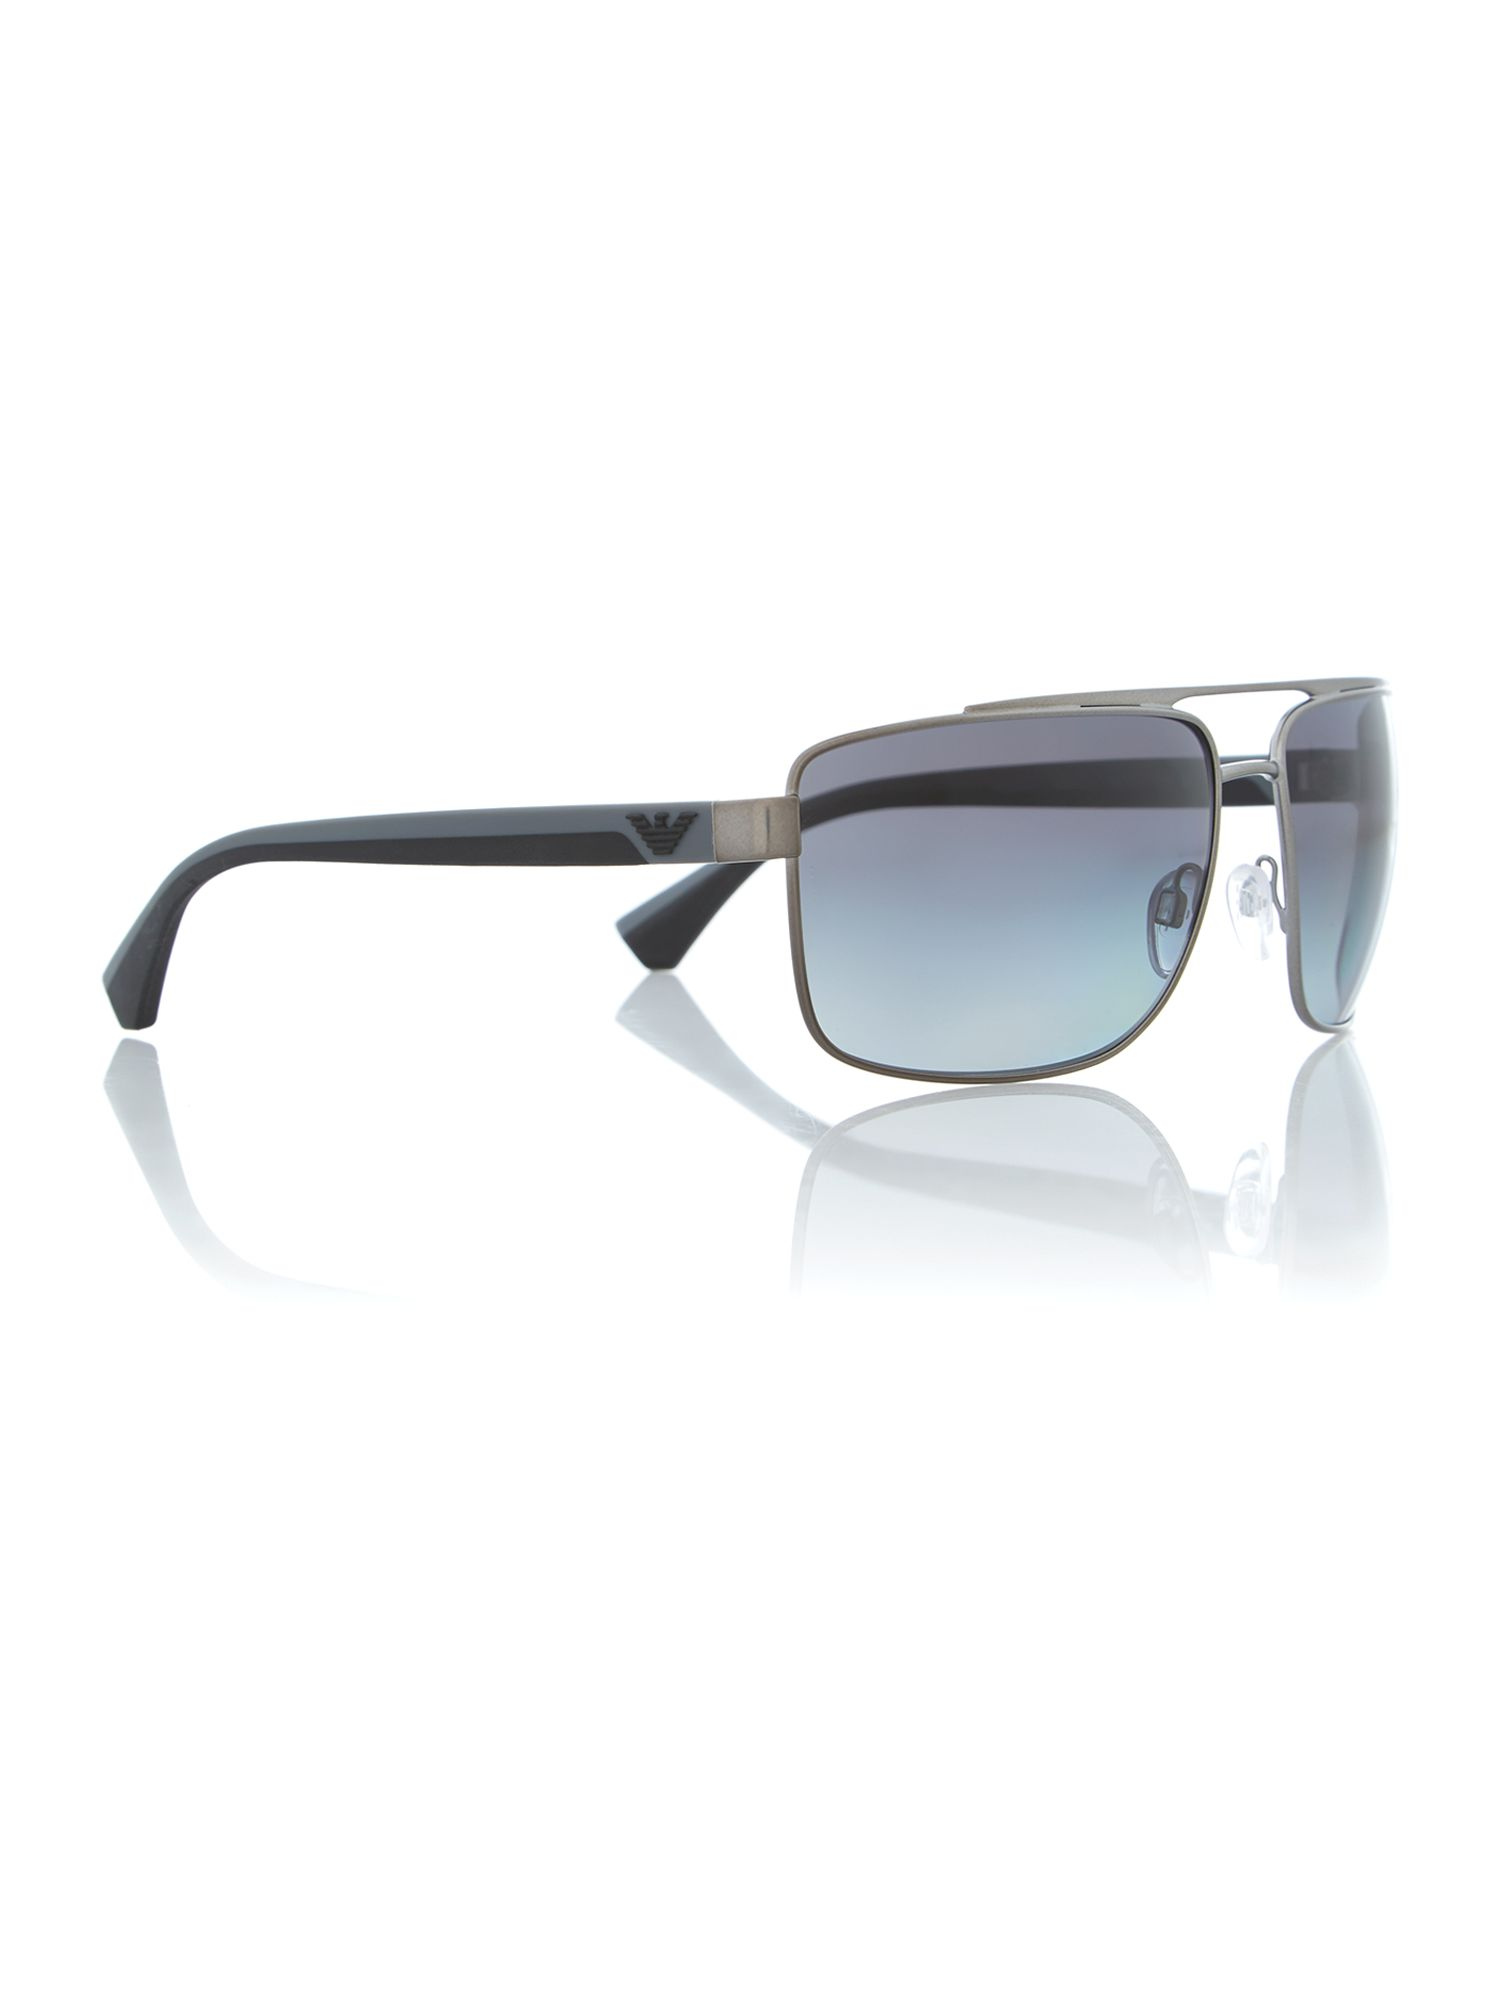 Black rectanglar sunglasses